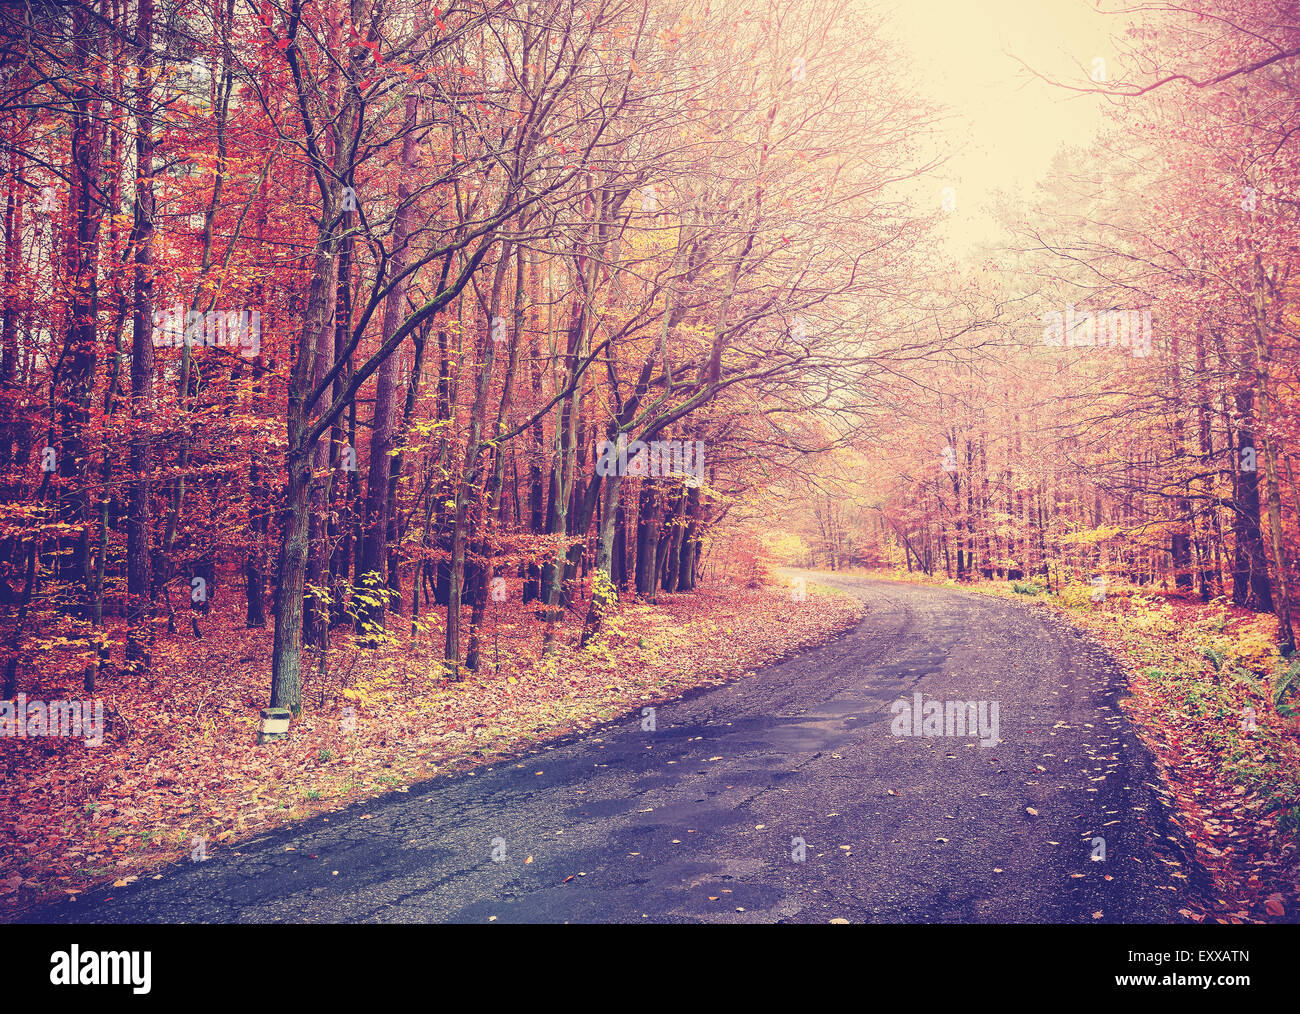 Vintage toned picture of a road in autumnal forest. - Stock Image